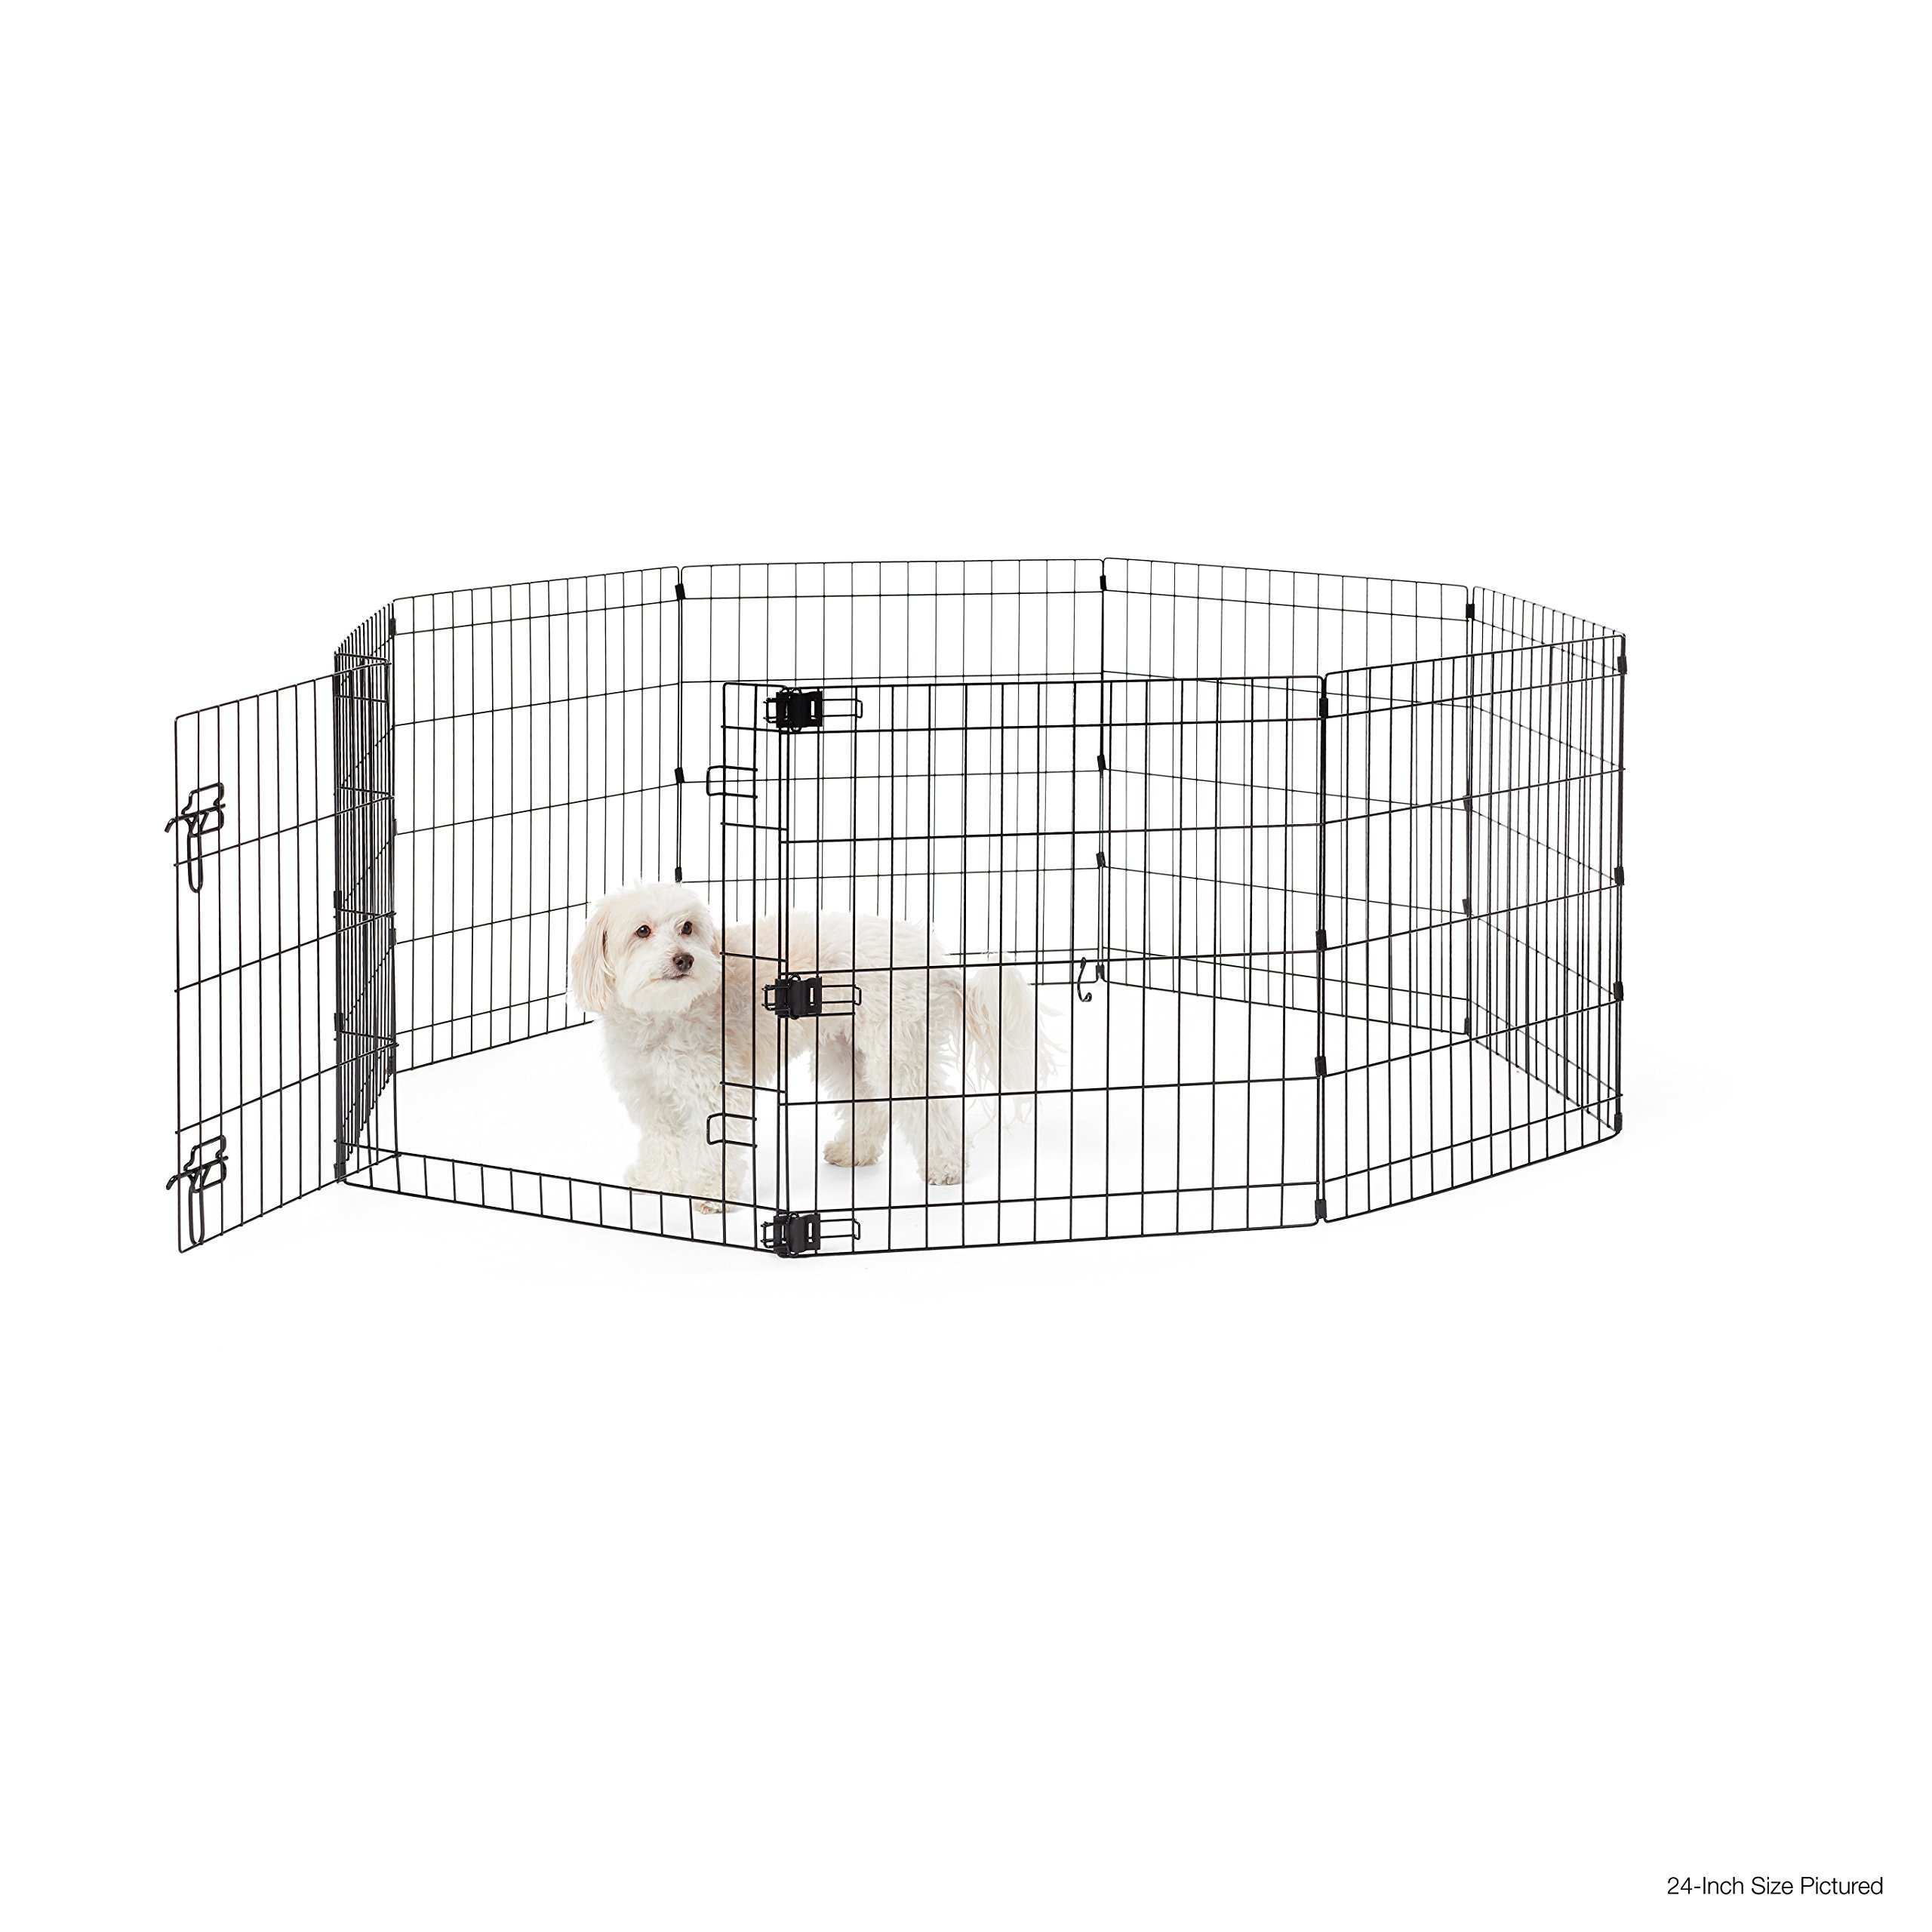 AmazonBasics Foldable Metal Pet Exercise and Playpen with Door, 36'' by AmazonBasics (Image #2)